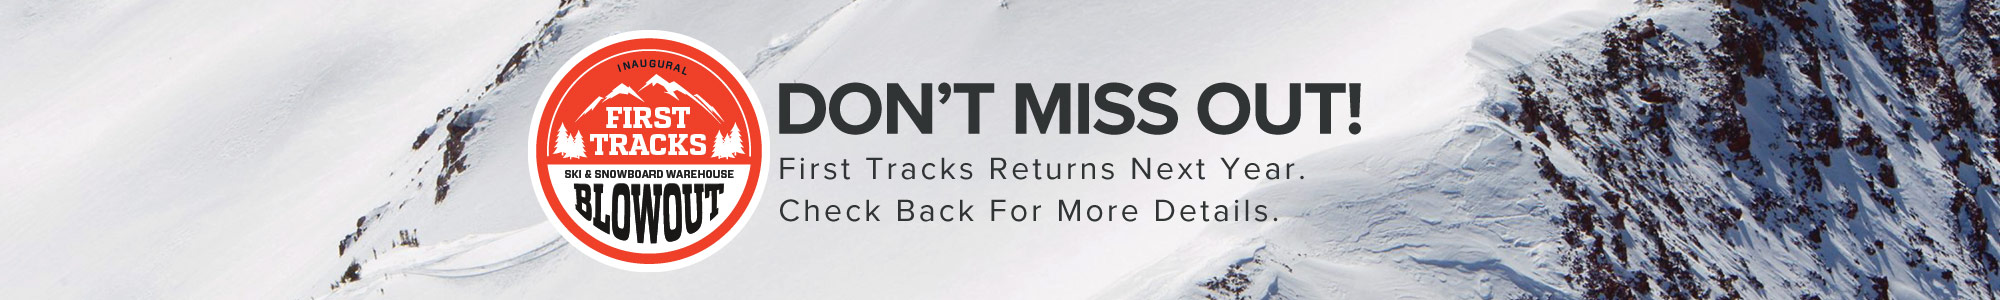 Don't miss out! First Tracks returns next year. Check back for more details.